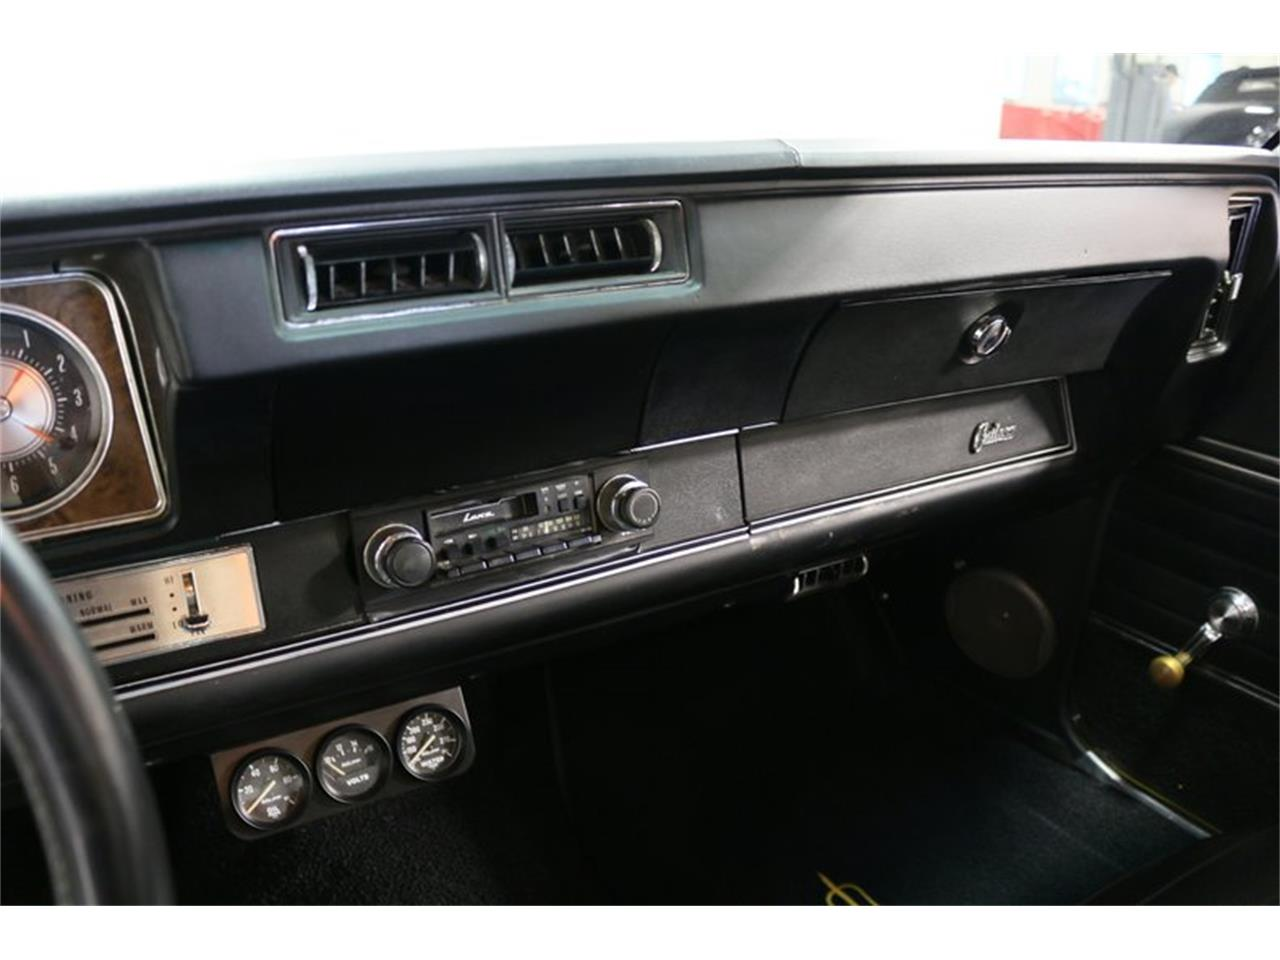 Large Picture of '70 Oldsmobile Cutlass - $34,995.00 Offered by Streetside Classics - Dallas / Fort Worth - PFUG